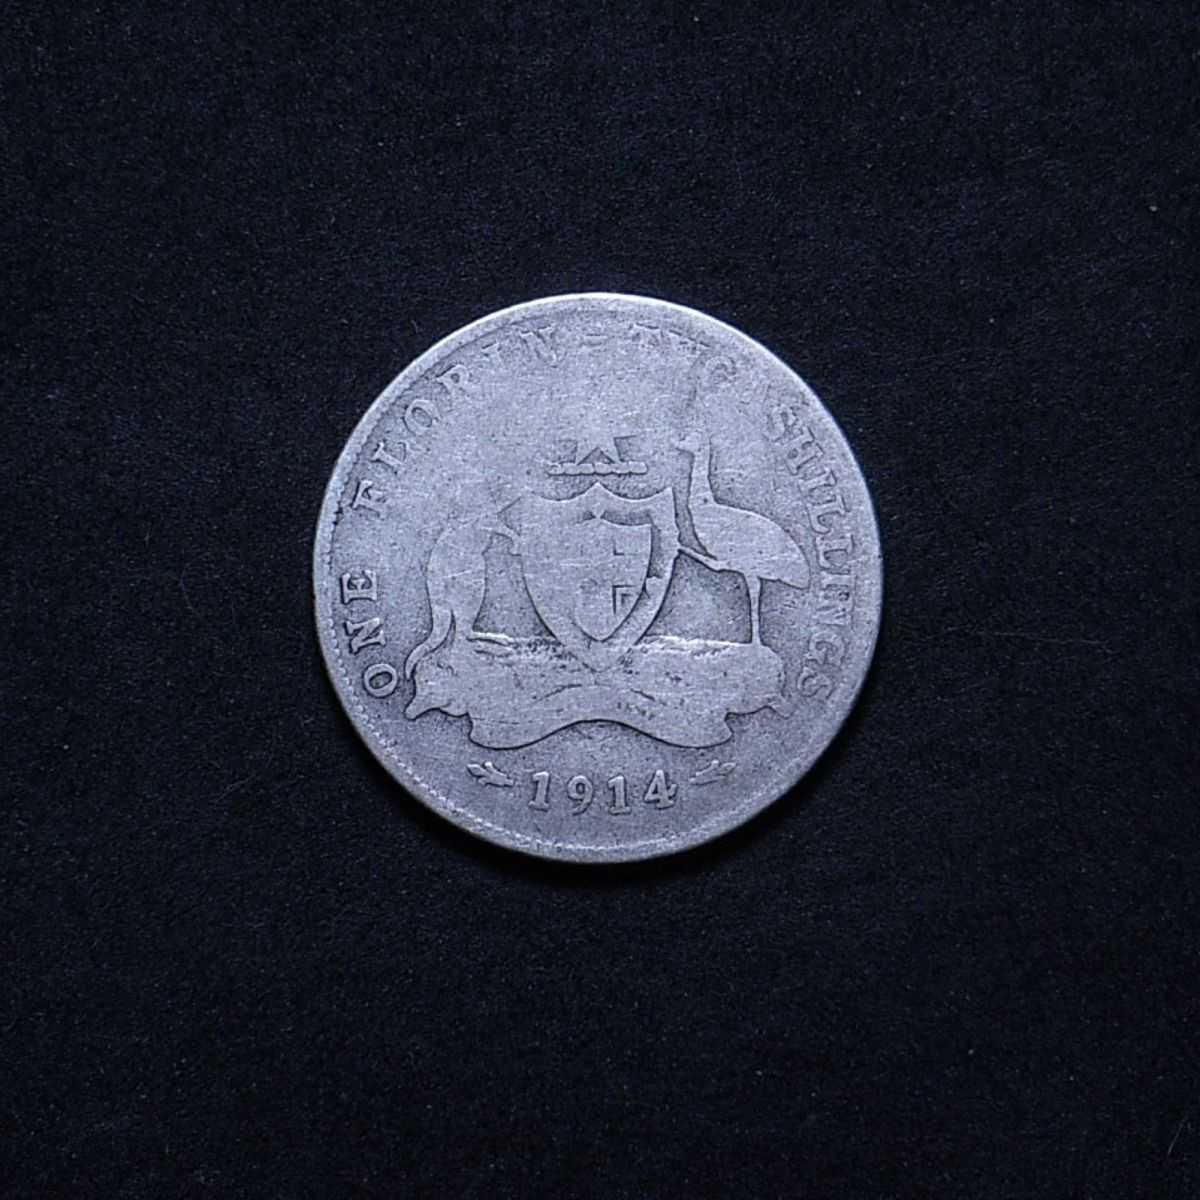 Aus Florin 1914 reverse showing overall appearance